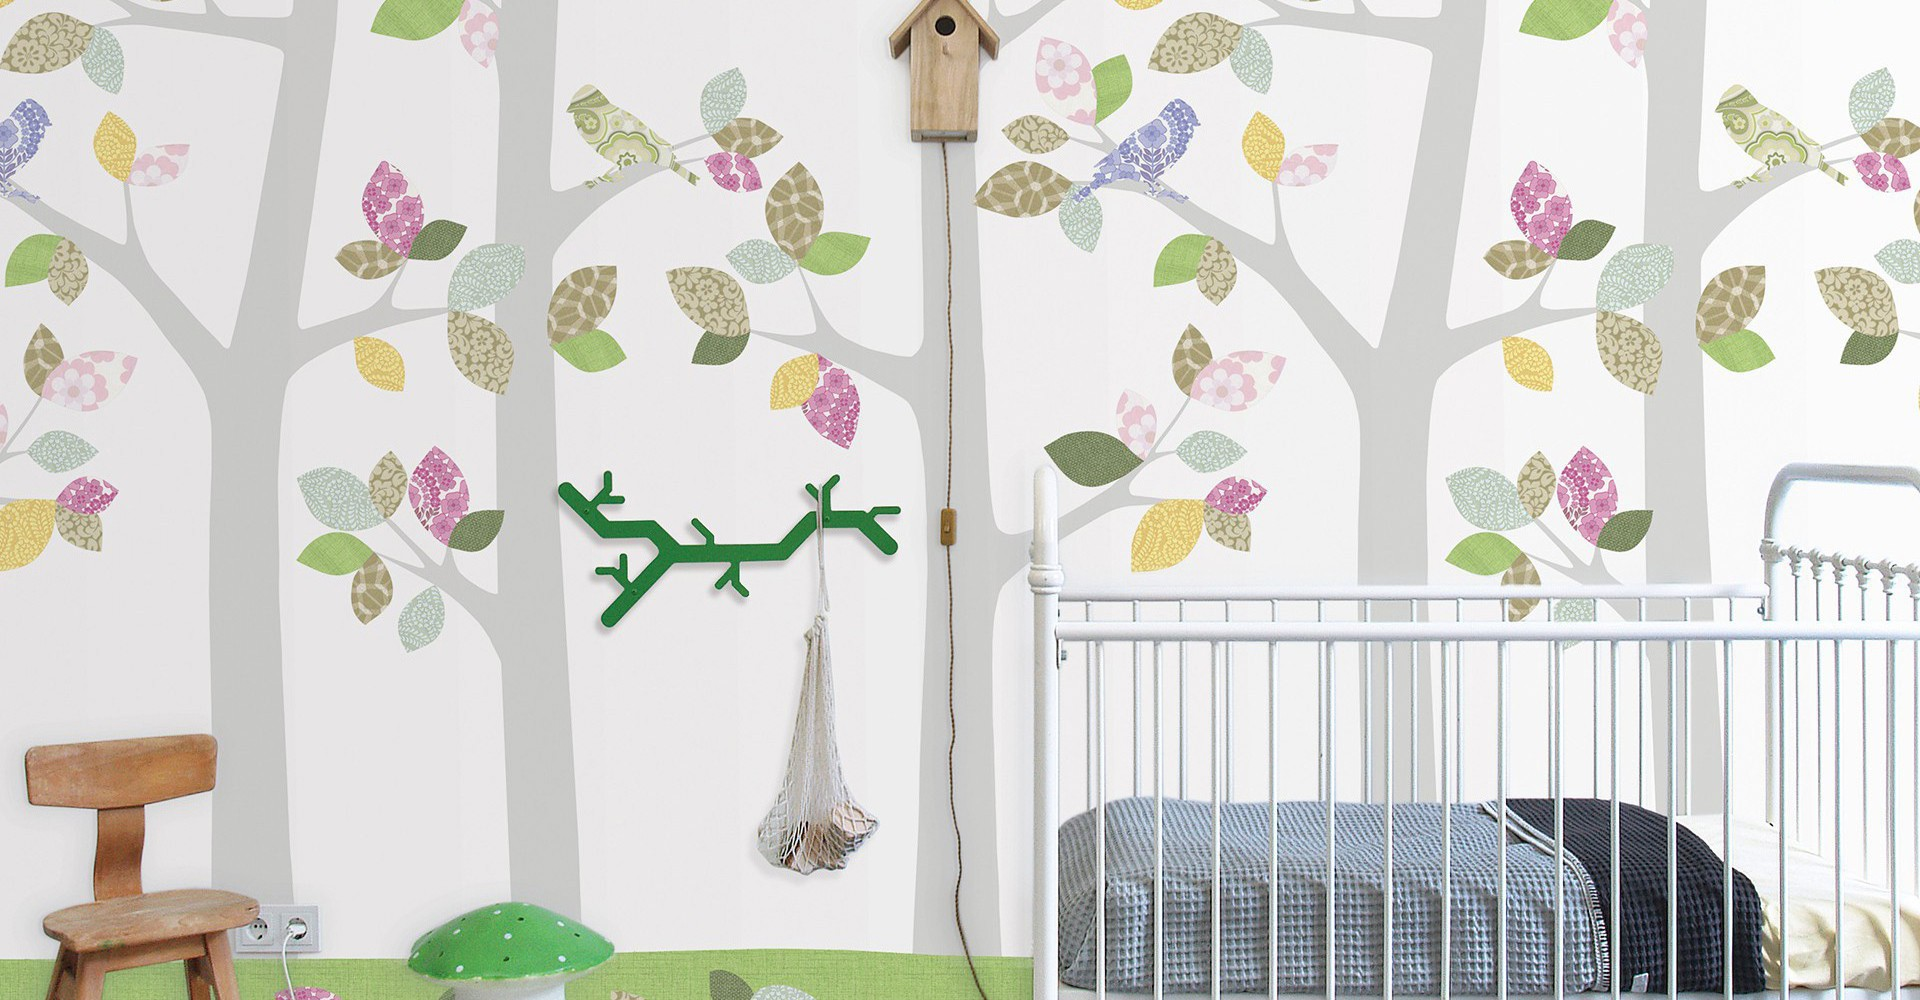 Wall Print for children\'s room, kids room or nursery. Printed on non-woven wallpaper. Designed by Inke Heiland.